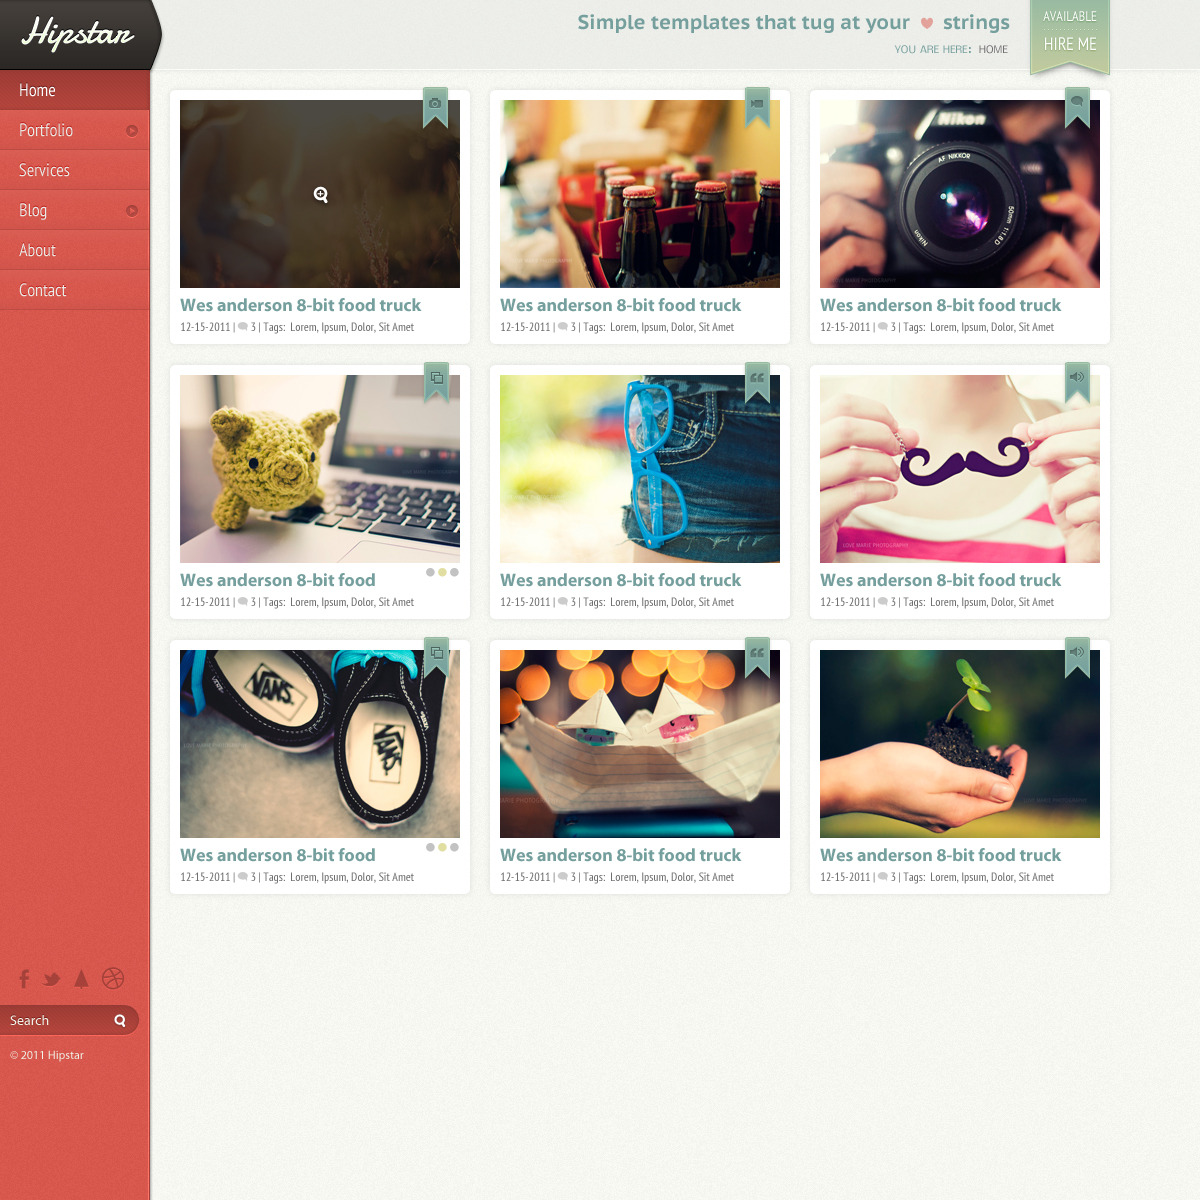 Hipstar - Creative PSD Template - Home page template displayed as grid layout.